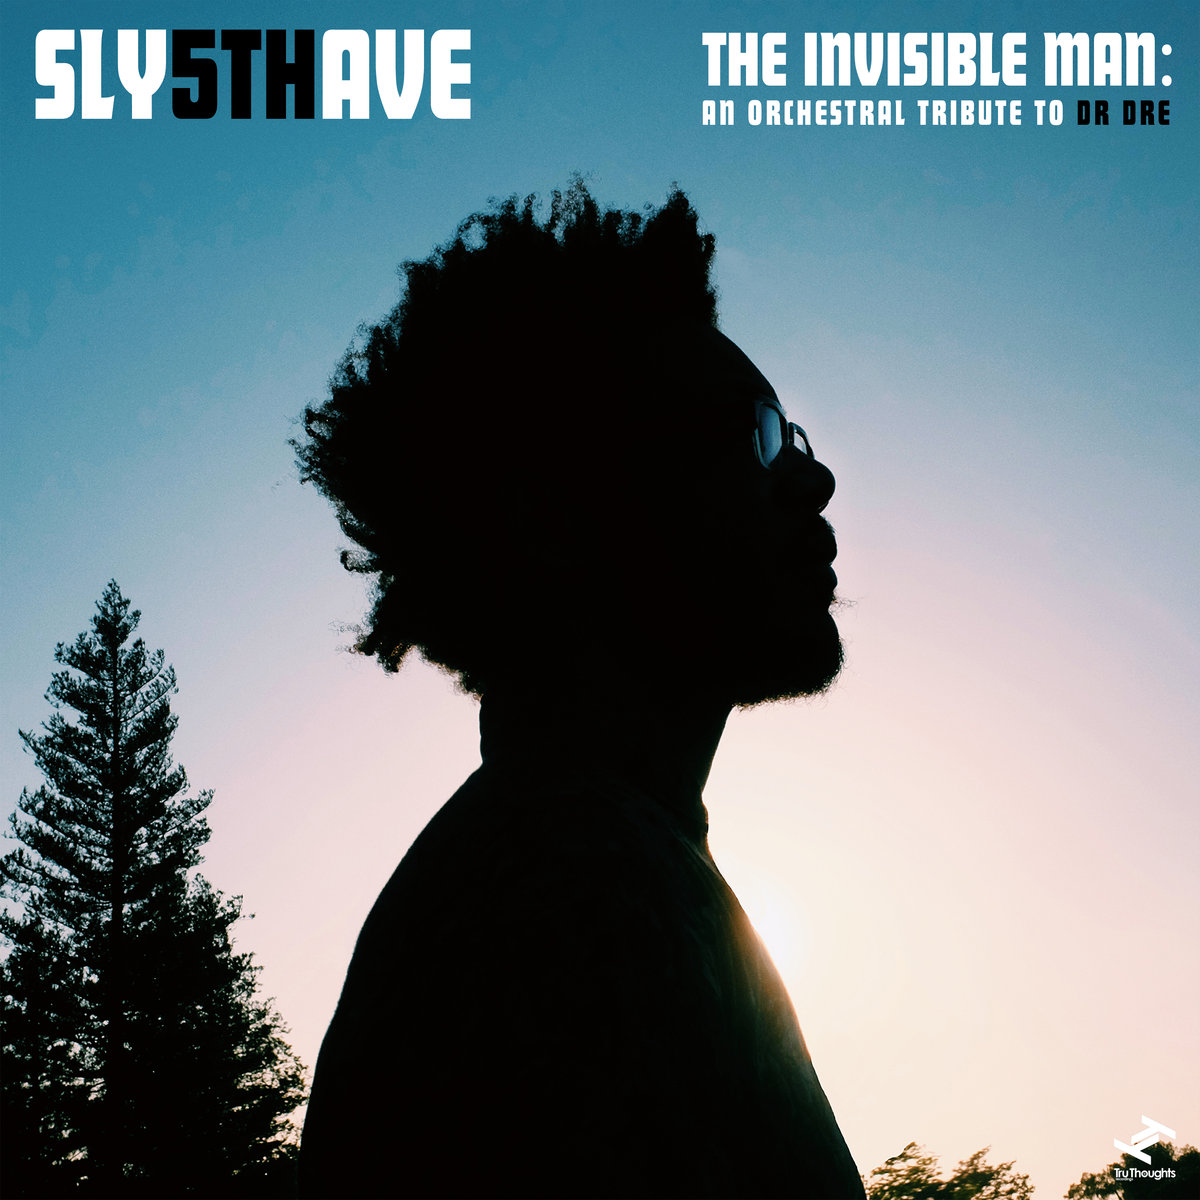 Sly5thAve – The Invisible Man: An Orchestral Tribute to Dr. Dre